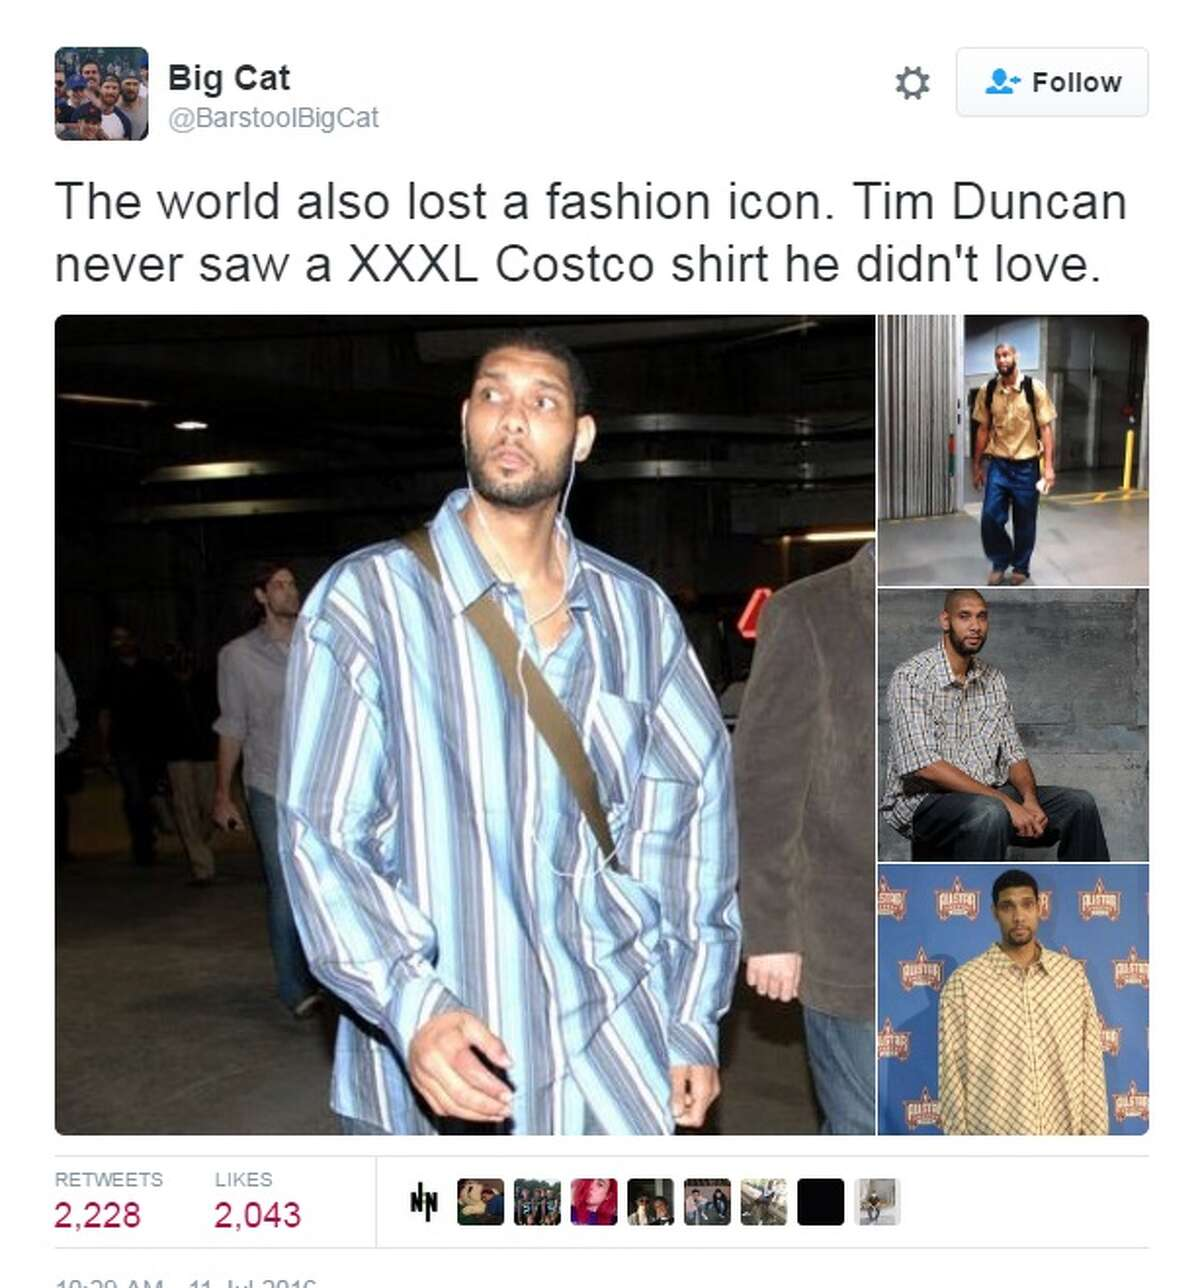 """""""The world also lost a fashion icon. Tim Duncan never saw a XXXL Costco shirt he didn't love,"""" @BarstoolBigCat."""